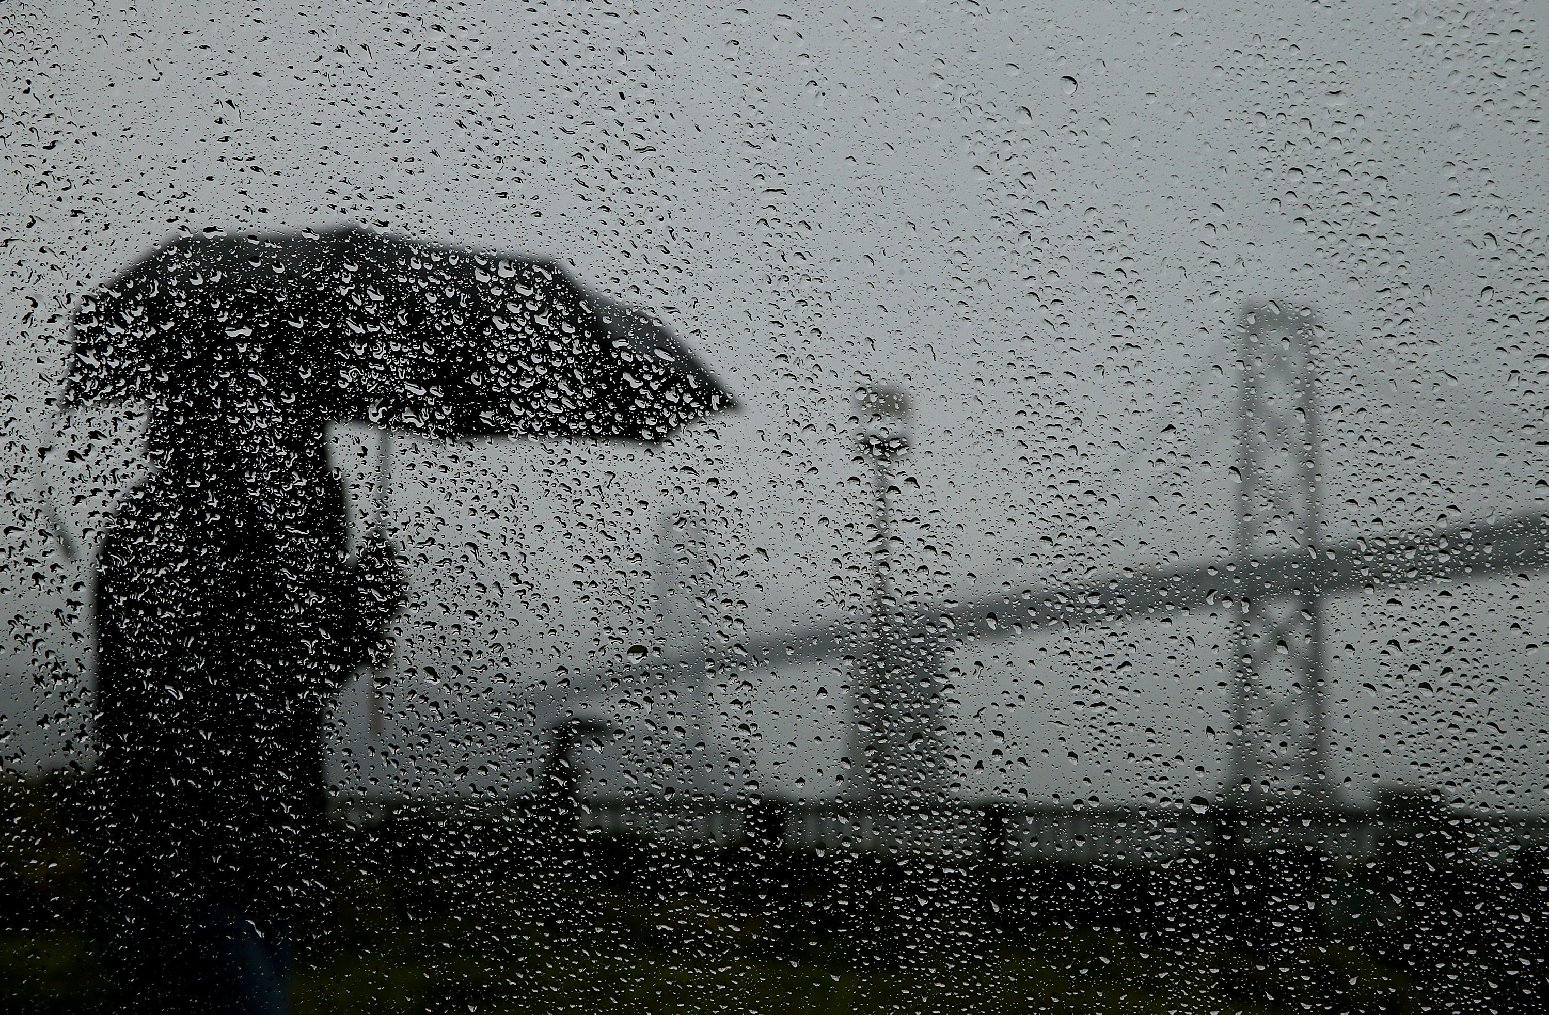 Pedestrian in the rain along San Francisco's Embarcadero during Bay Area's first major storm of 2014. (Justin Sullivan/Getty Images)